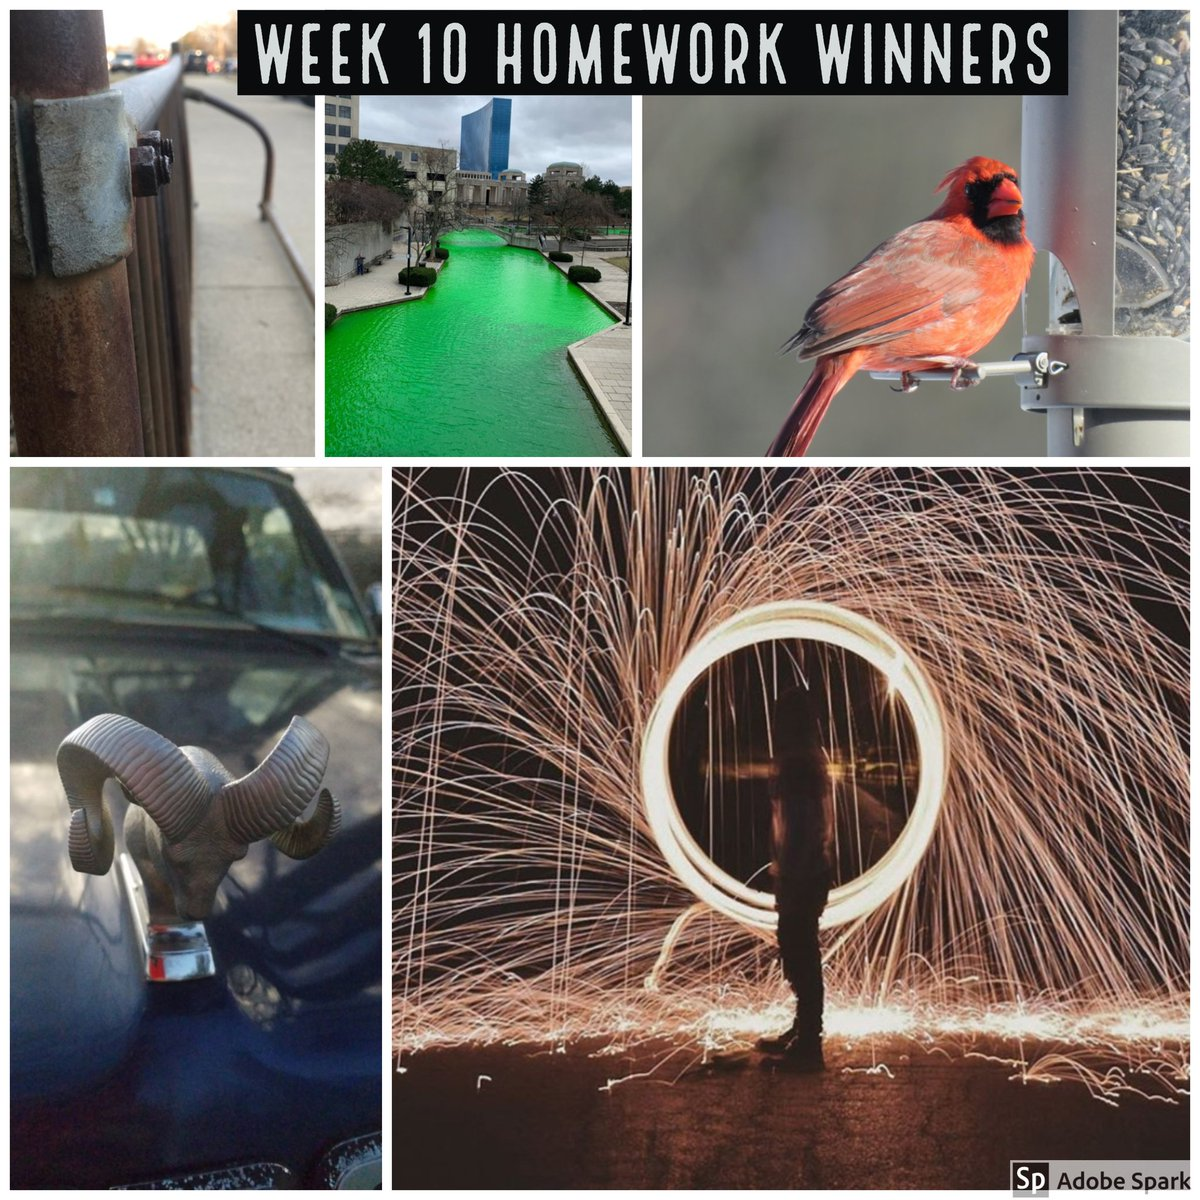 Week 10 Homework Winners! Students explored various ways to find #symbols and ways to capture them. #mhsphotography #photography #highschoolphotographer #uneditedpic.twitter.com/hRC4rFfxiS